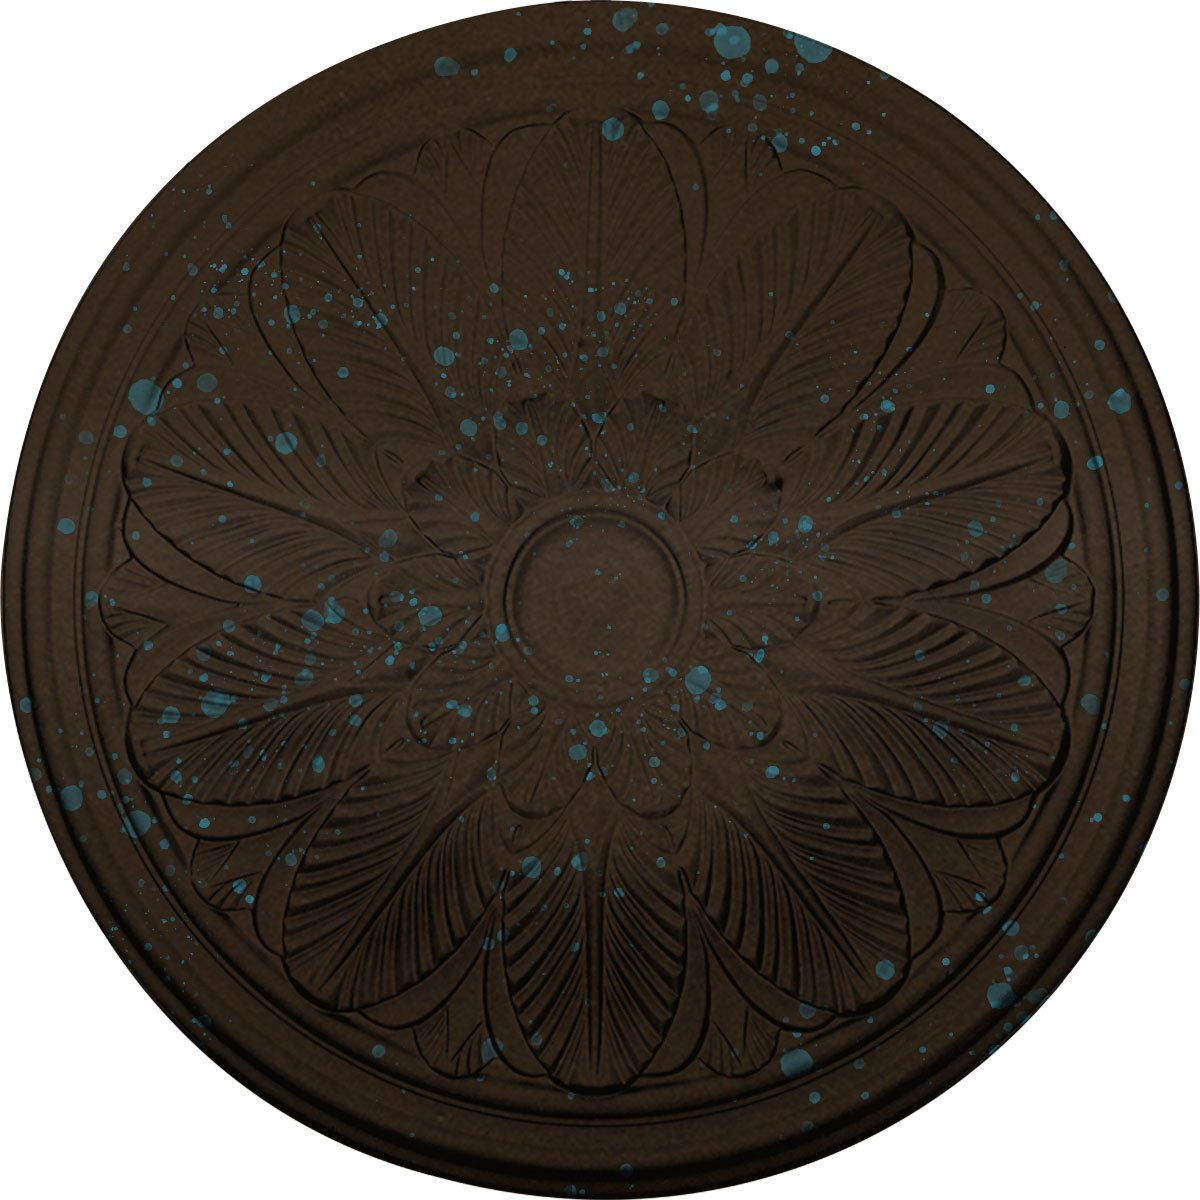 Ekena Millwork CM22BOBBS 22 5/8'' OD x 1 3/4'' P Bordeaux Ceiling Medallion (fits Canopies up to 3 1/4''), Bronze Blue Patina